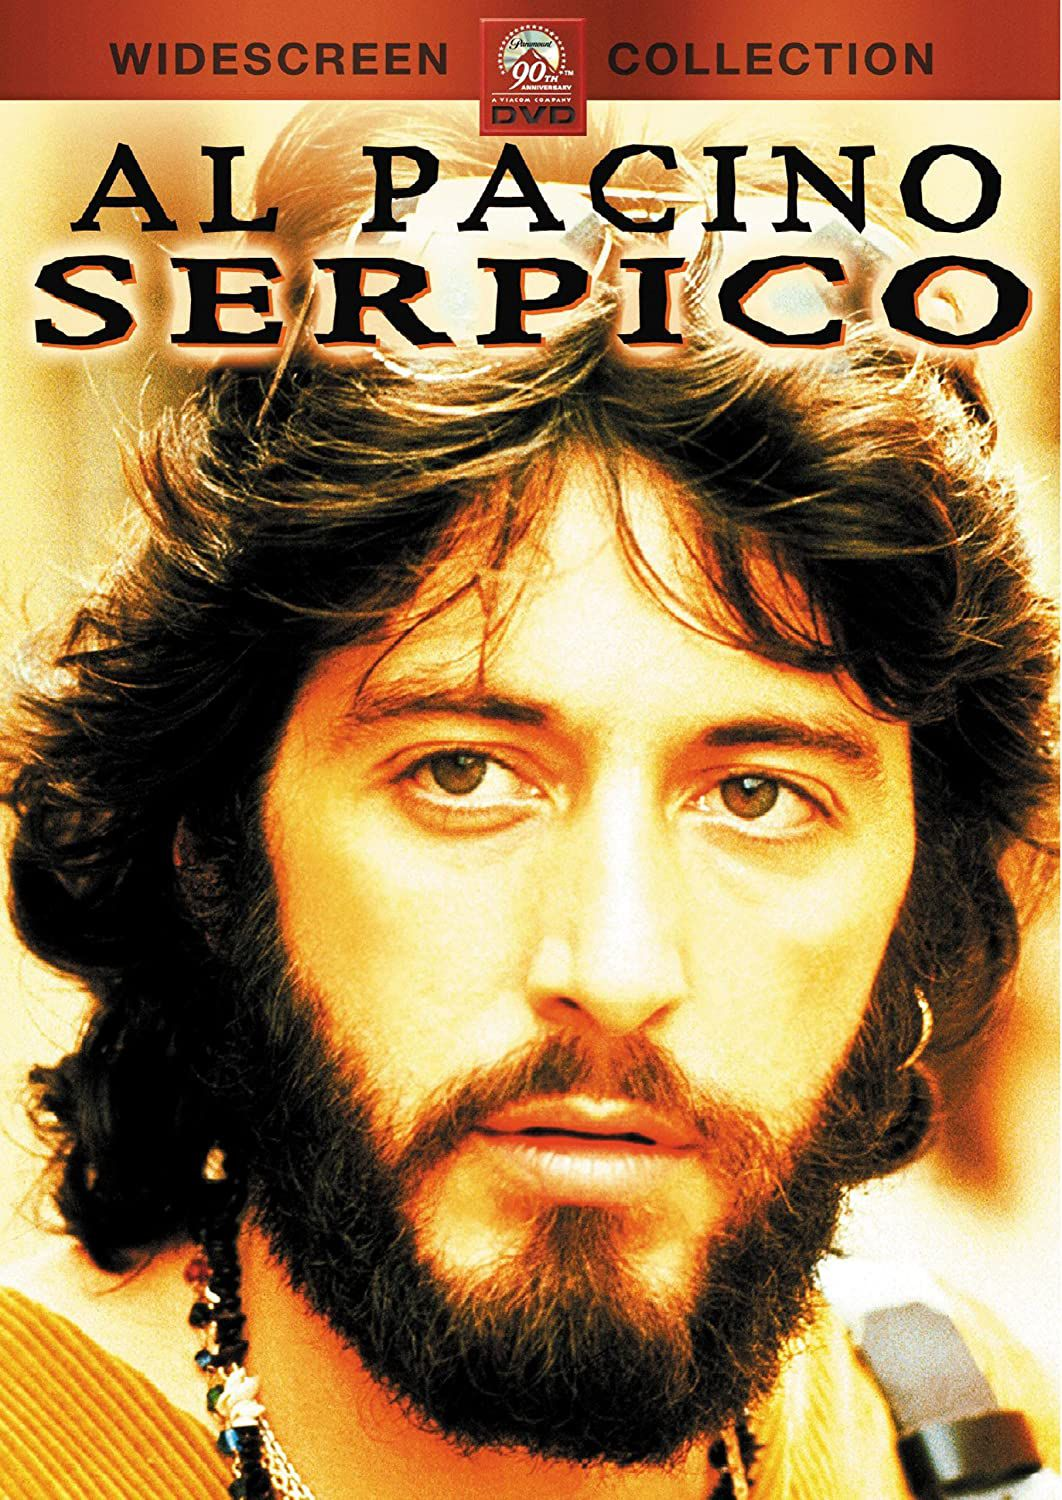 Serpico is a true story about a New York City police officer who refused to take part in corrupt activities. Al Pacino played him in a movie. Richardson police officer Kayla Walker says she finds inspiration in Serpico as she battles an alleged police ticket writing quota scheme.